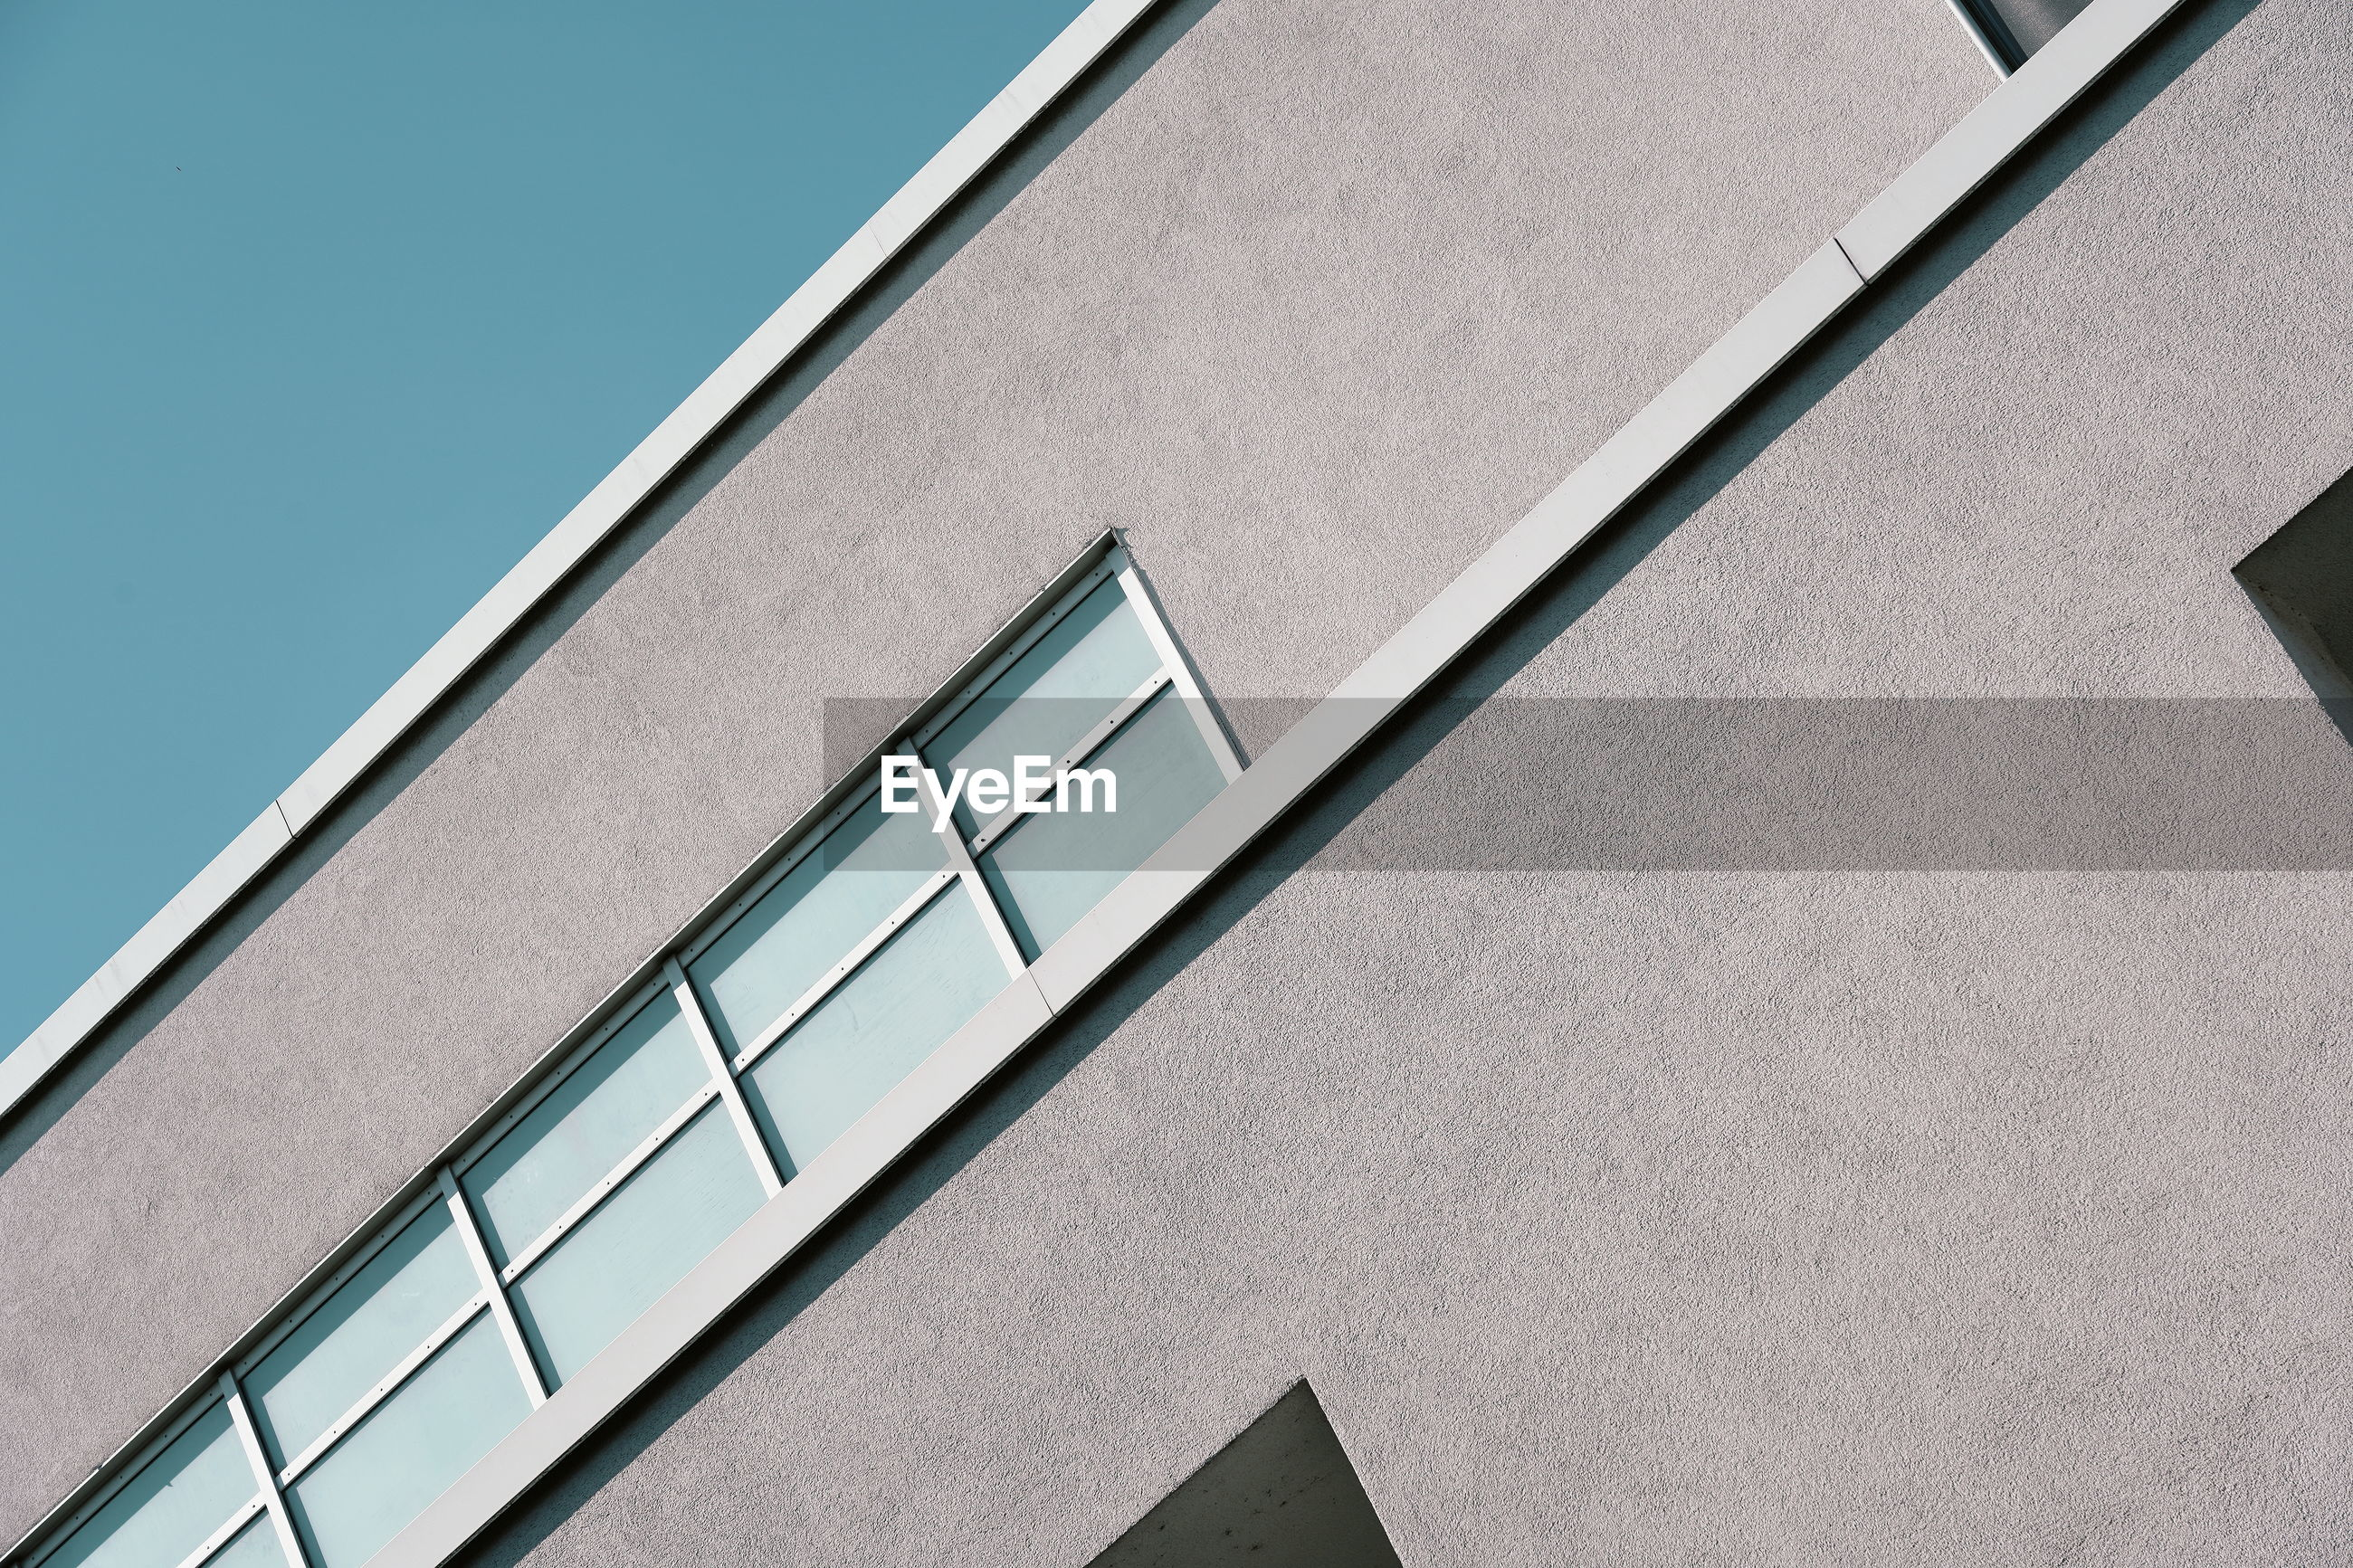 architecture, built structure, building exterior, low angle view, building, no people, facade, line, daylighting, clear sky, sky, window, office, city, day, business, outdoors, pattern, nature, blue, sunlight, wall - building feature, gray, sparse